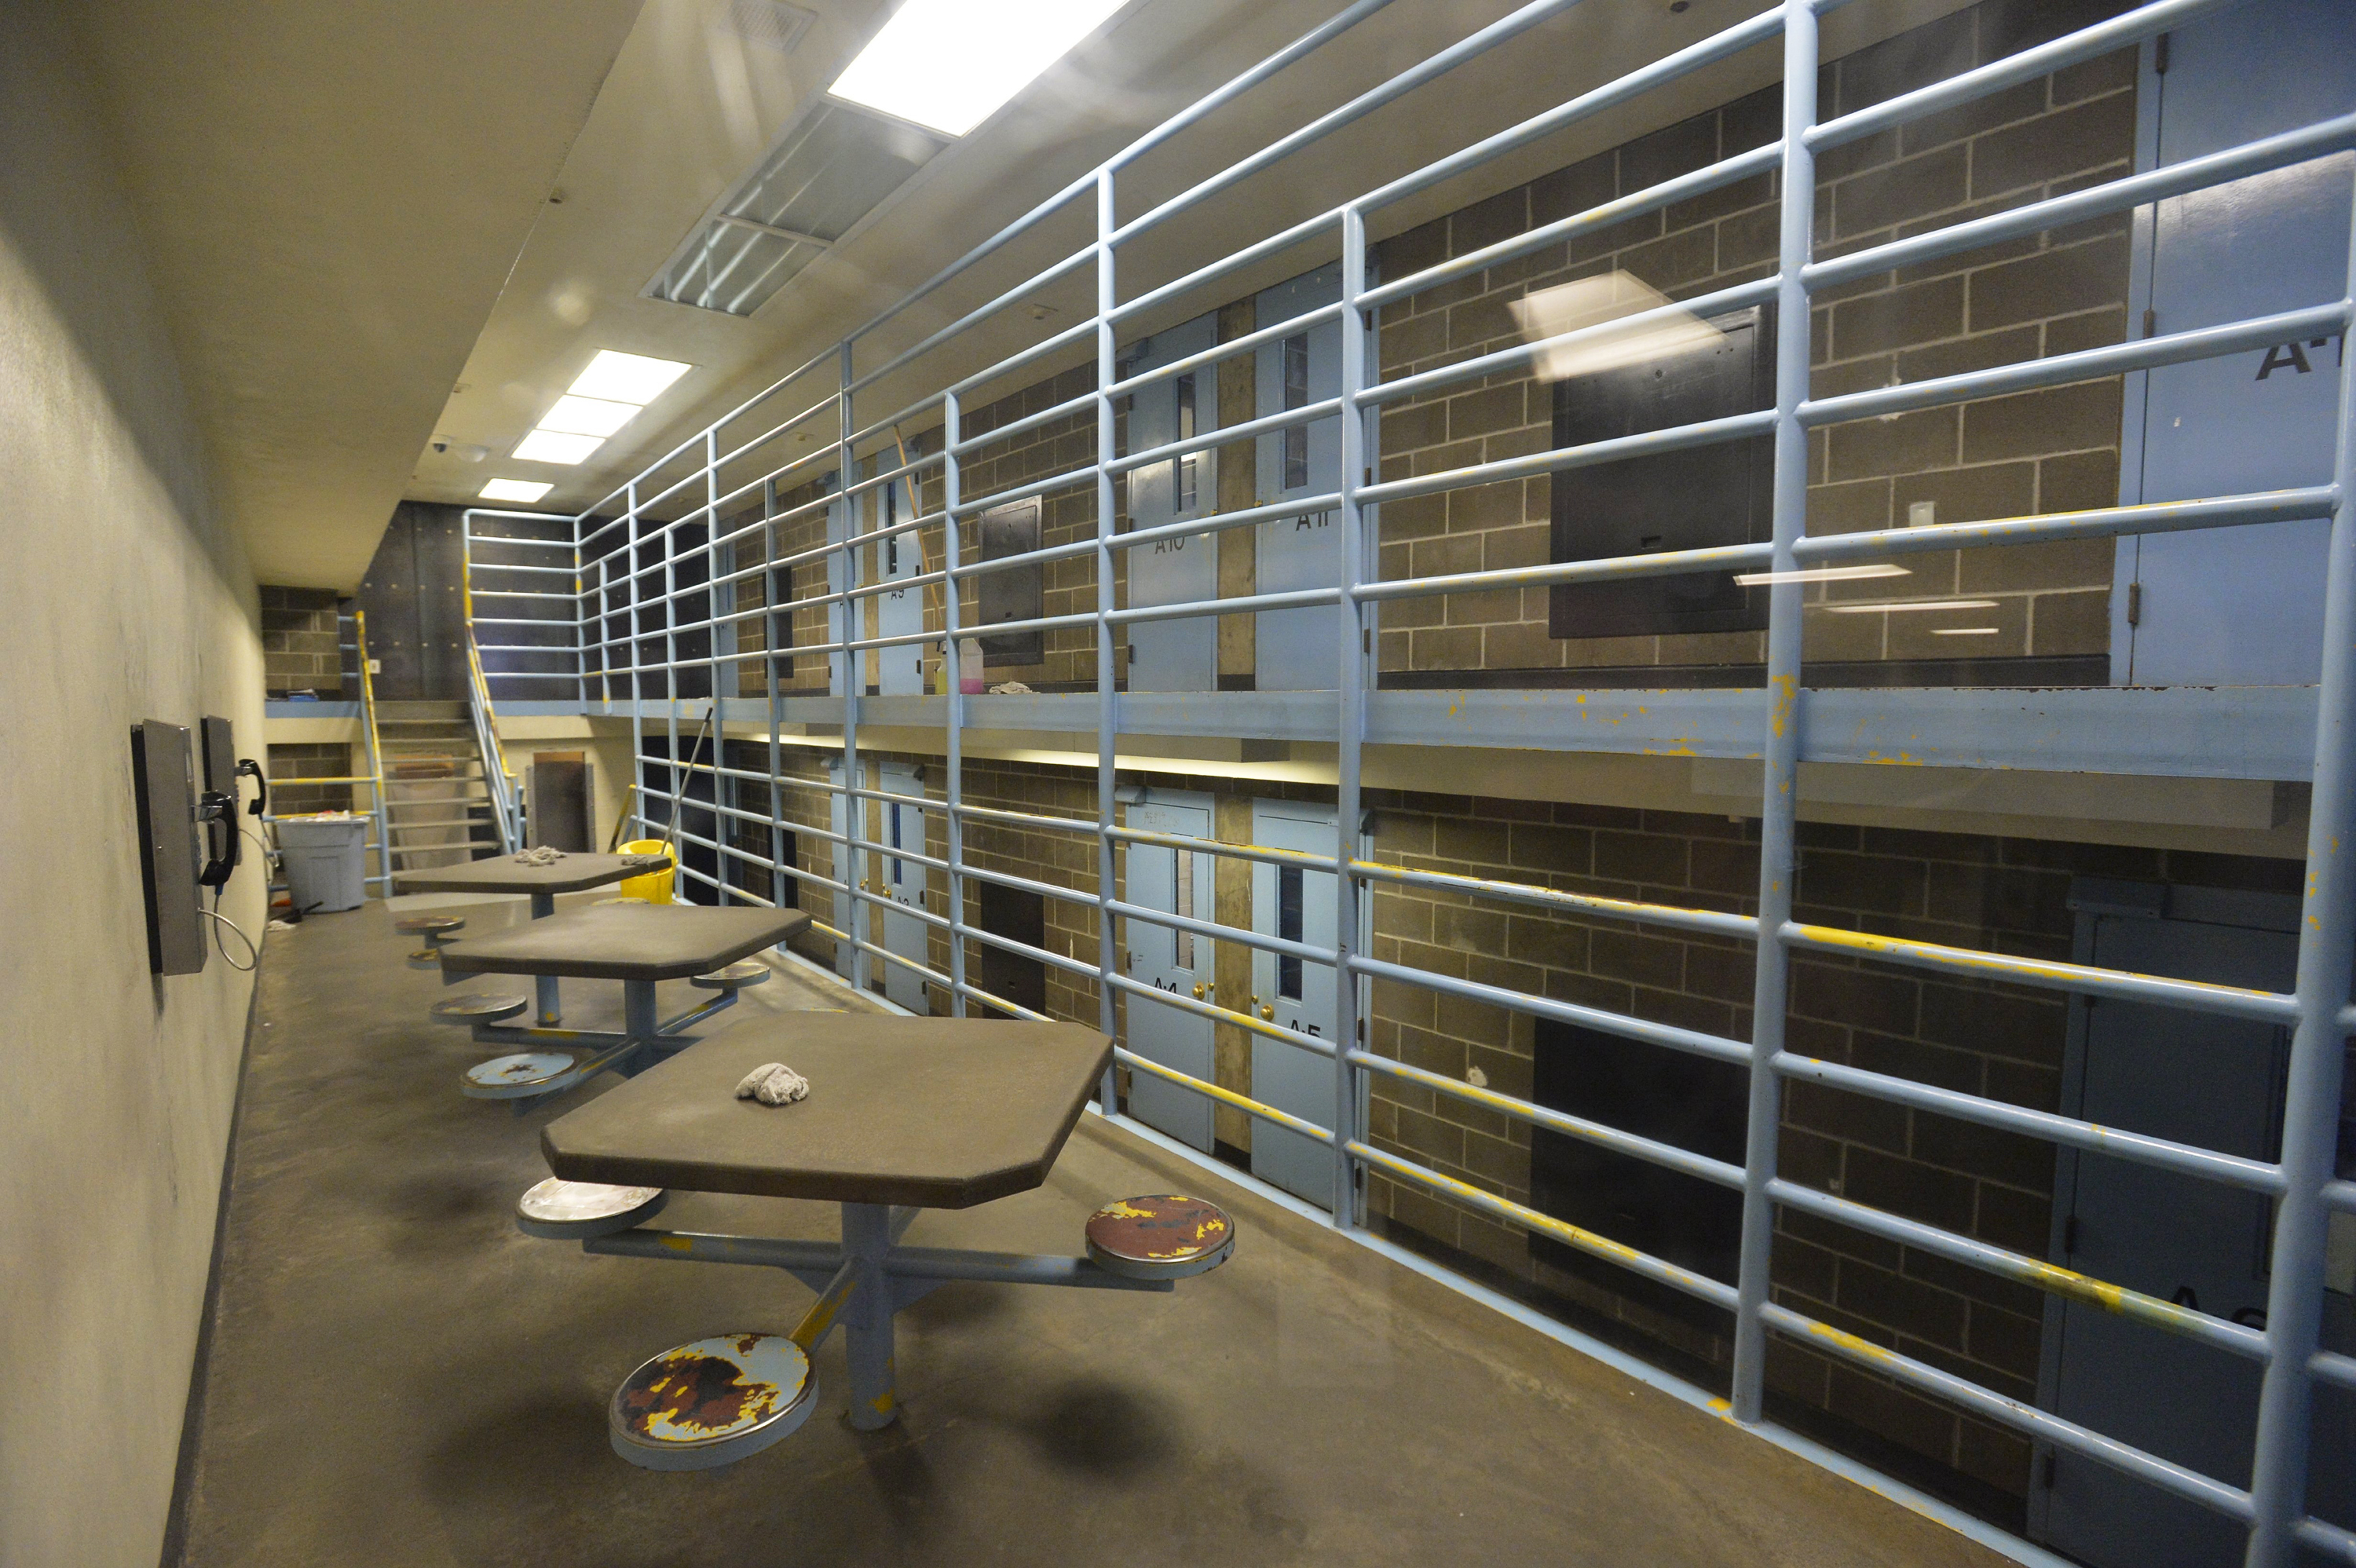 That prison telephone racket? It could soon get even more